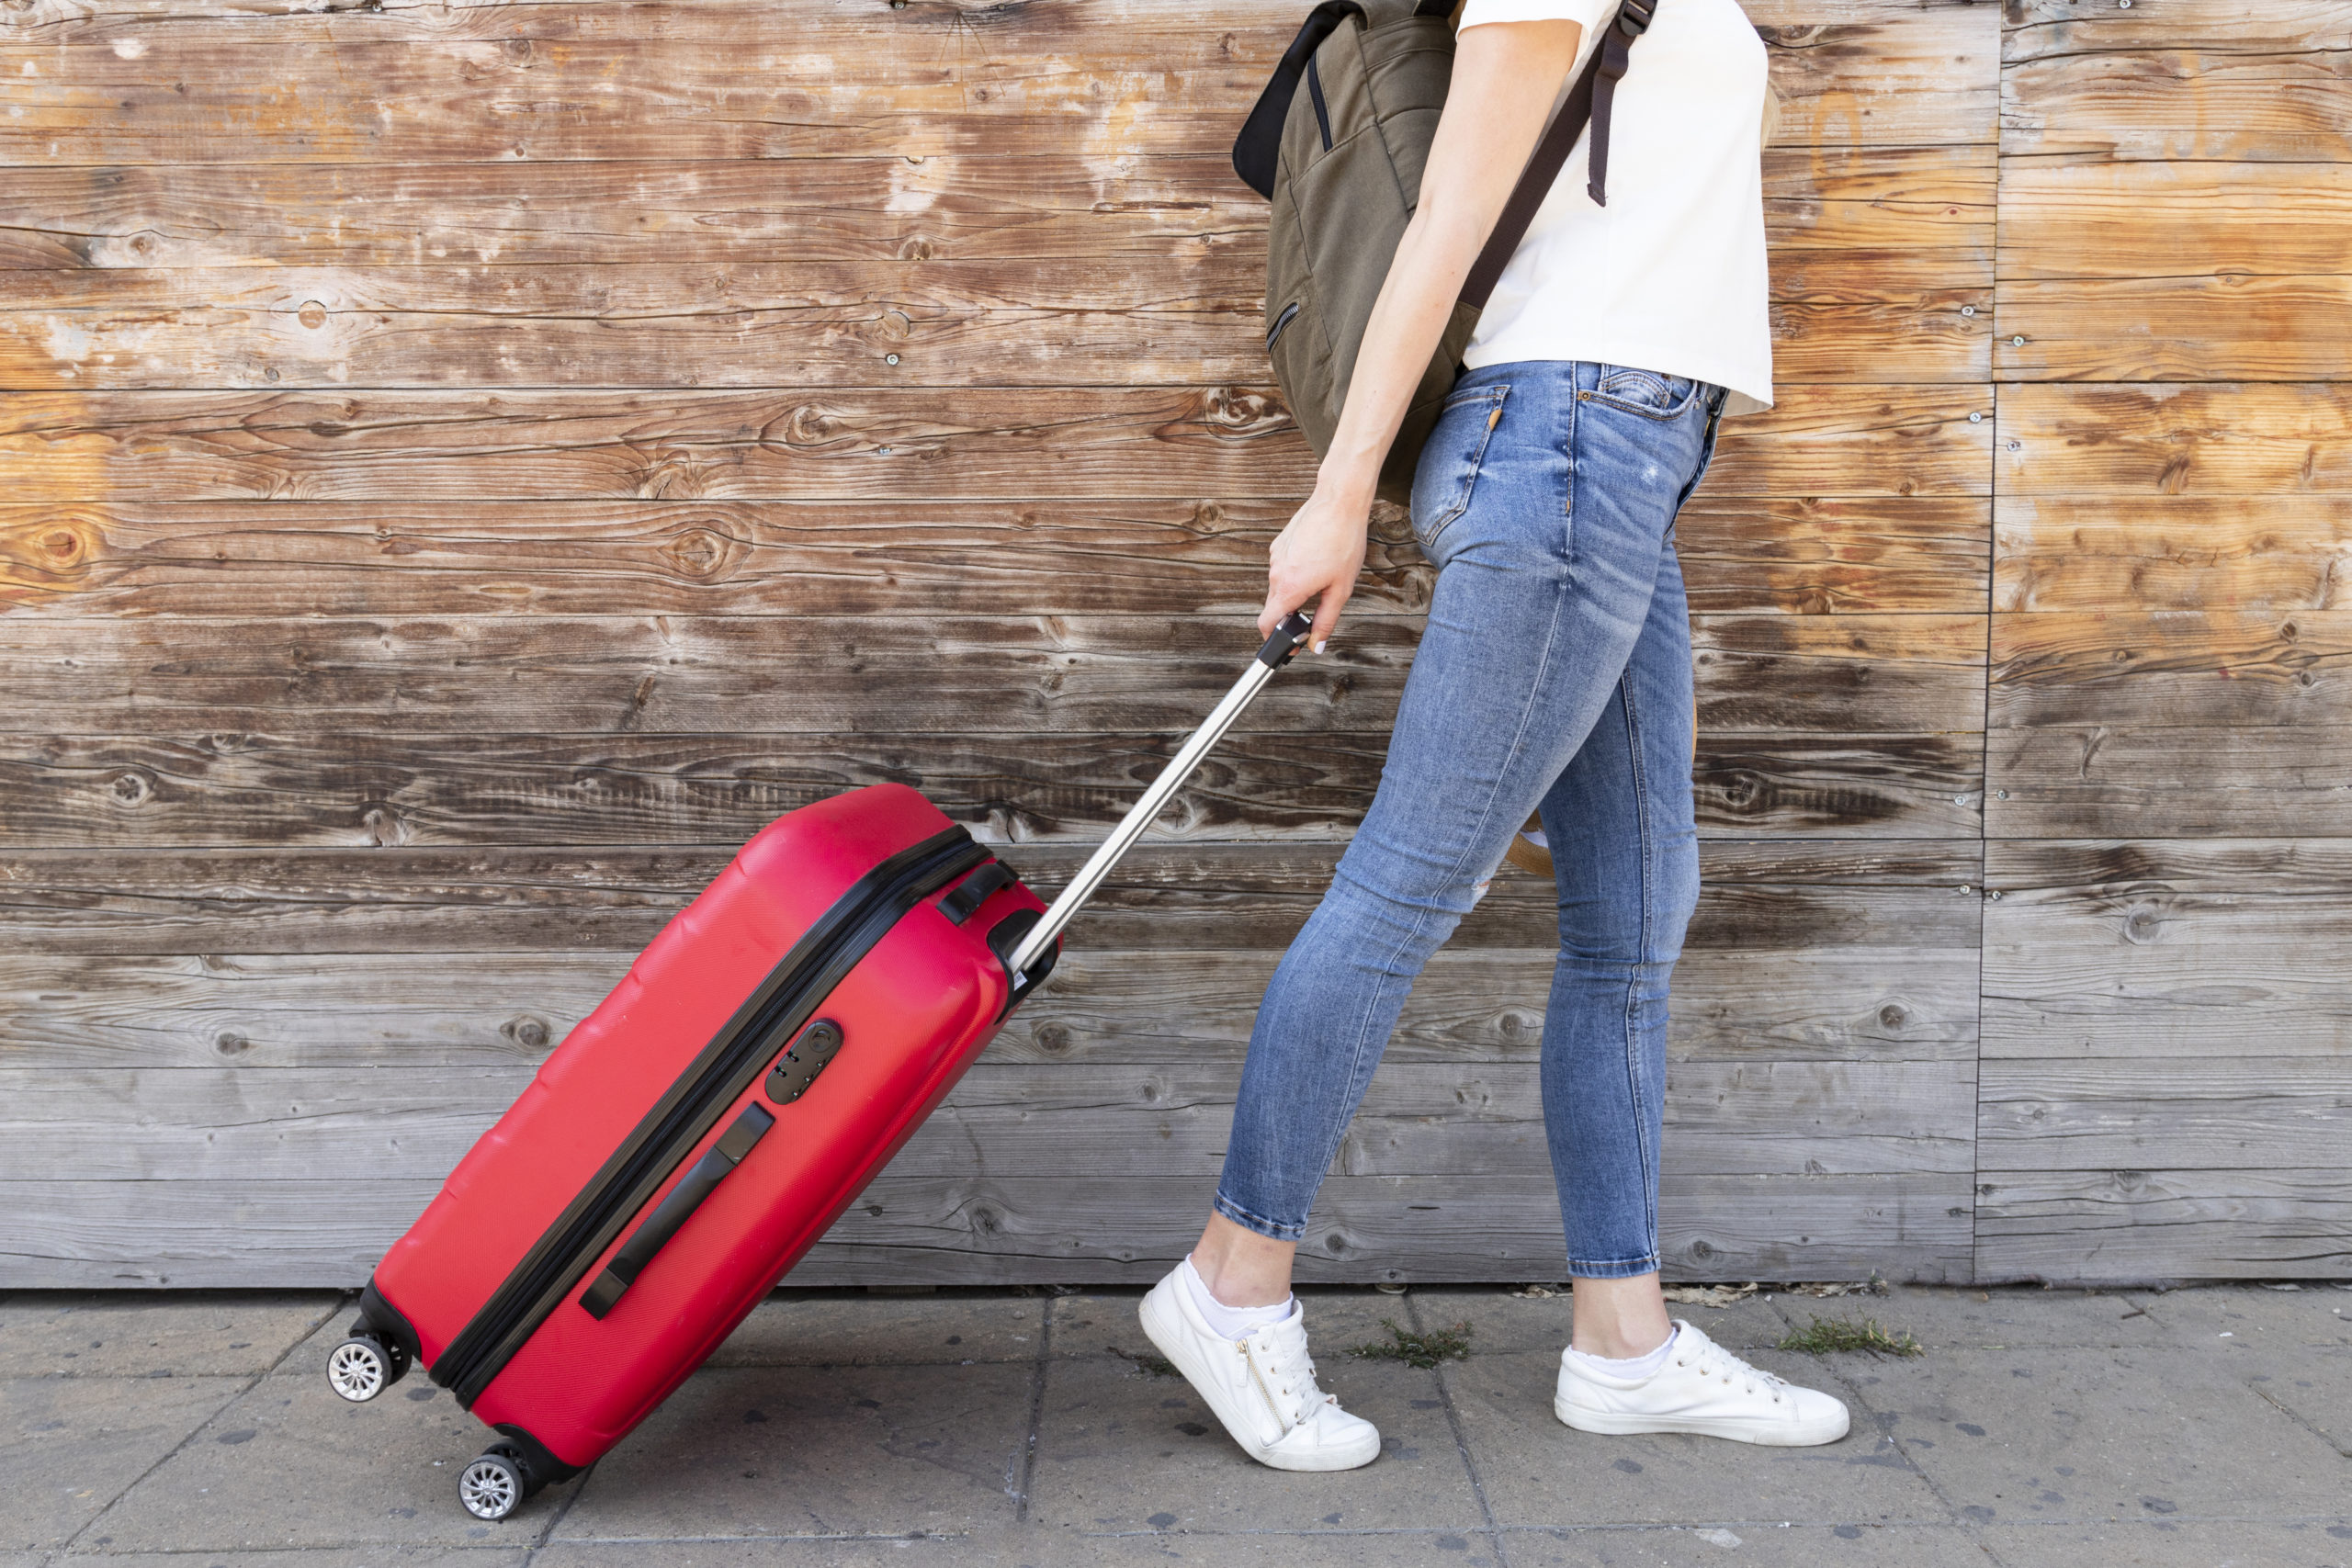 London Luggage Storage Guide What You Should Know